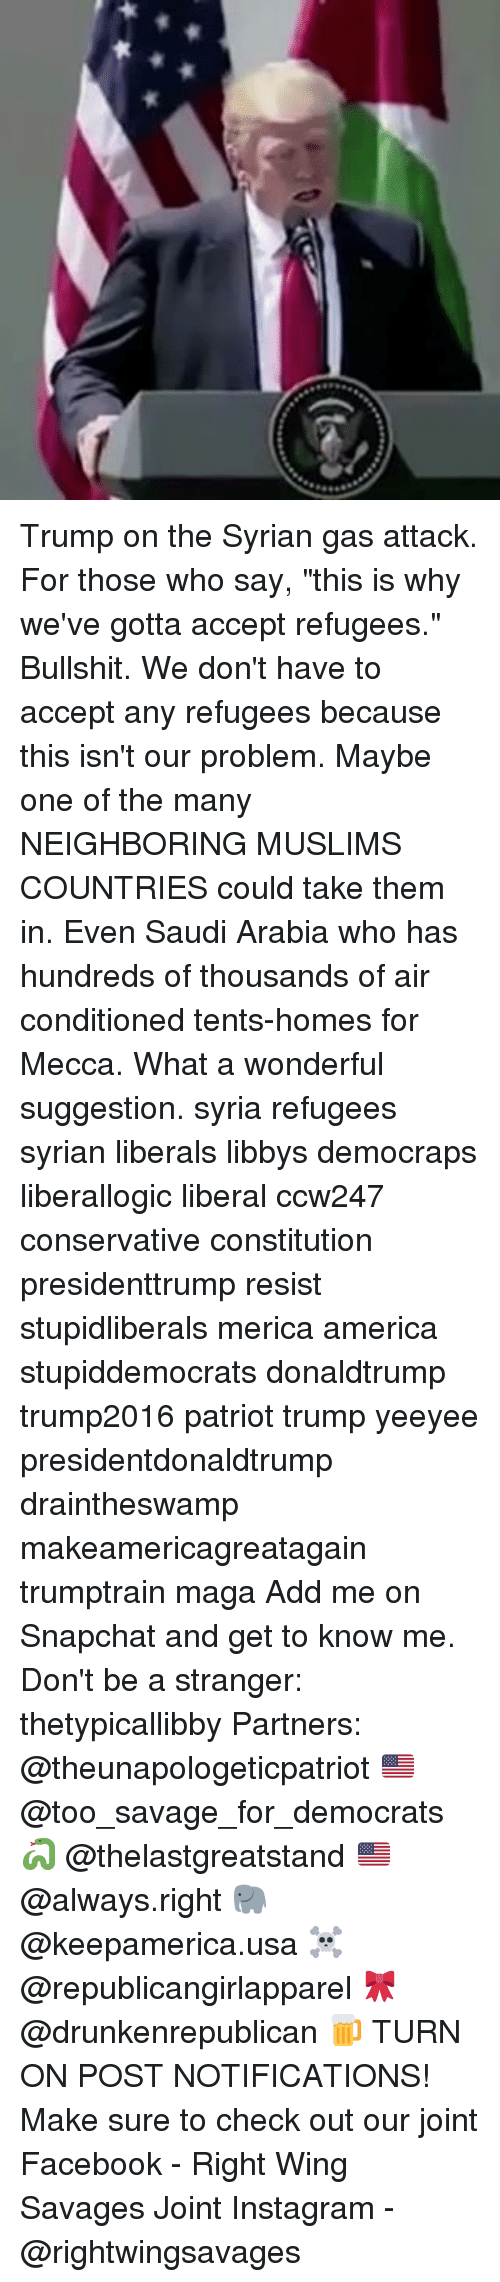 "America, Facebook, and Instagram: Trump on the Syrian gas attack. For those who say, ""this is why we've gotta accept refugees."" Bullshit. We don't have to accept any refugees because this isn't our problem. Maybe one of the many NEIGHBORING MUSLIMS COUNTRIES could take them in. Even Saudi Arabia who has hundreds of thousands of air conditioned tents-homes for Mecca. What a wonderful suggestion. syria refugees syrian liberals libbys democraps liberallogic liberal ccw247 conservative constitution presidenttrump resist stupidliberals merica america stupiddemocrats donaldtrump trump2016 patriot trump yeeyee presidentdonaldtrump draintheswamp makeamericagreatagain trumptrain maga Add me on Snapchat and get to know me. Don't be a stranger: thetypicallibby Partners: @theunapologeticpatriot 🇺🇸 @too_savage_for_democrats 🐍 @thelastgreatstand 🇺🇸 @always.right 🐘 @keepamerica.usa ☠️ @republicangirlapparel 🎀 @drunkenrepublican 🍺 TURN ON POST NOTIFICATIONS! Make sure to check out our joint Facebook - Right Wing Savages Joint Instagram - @rightwingsavages"